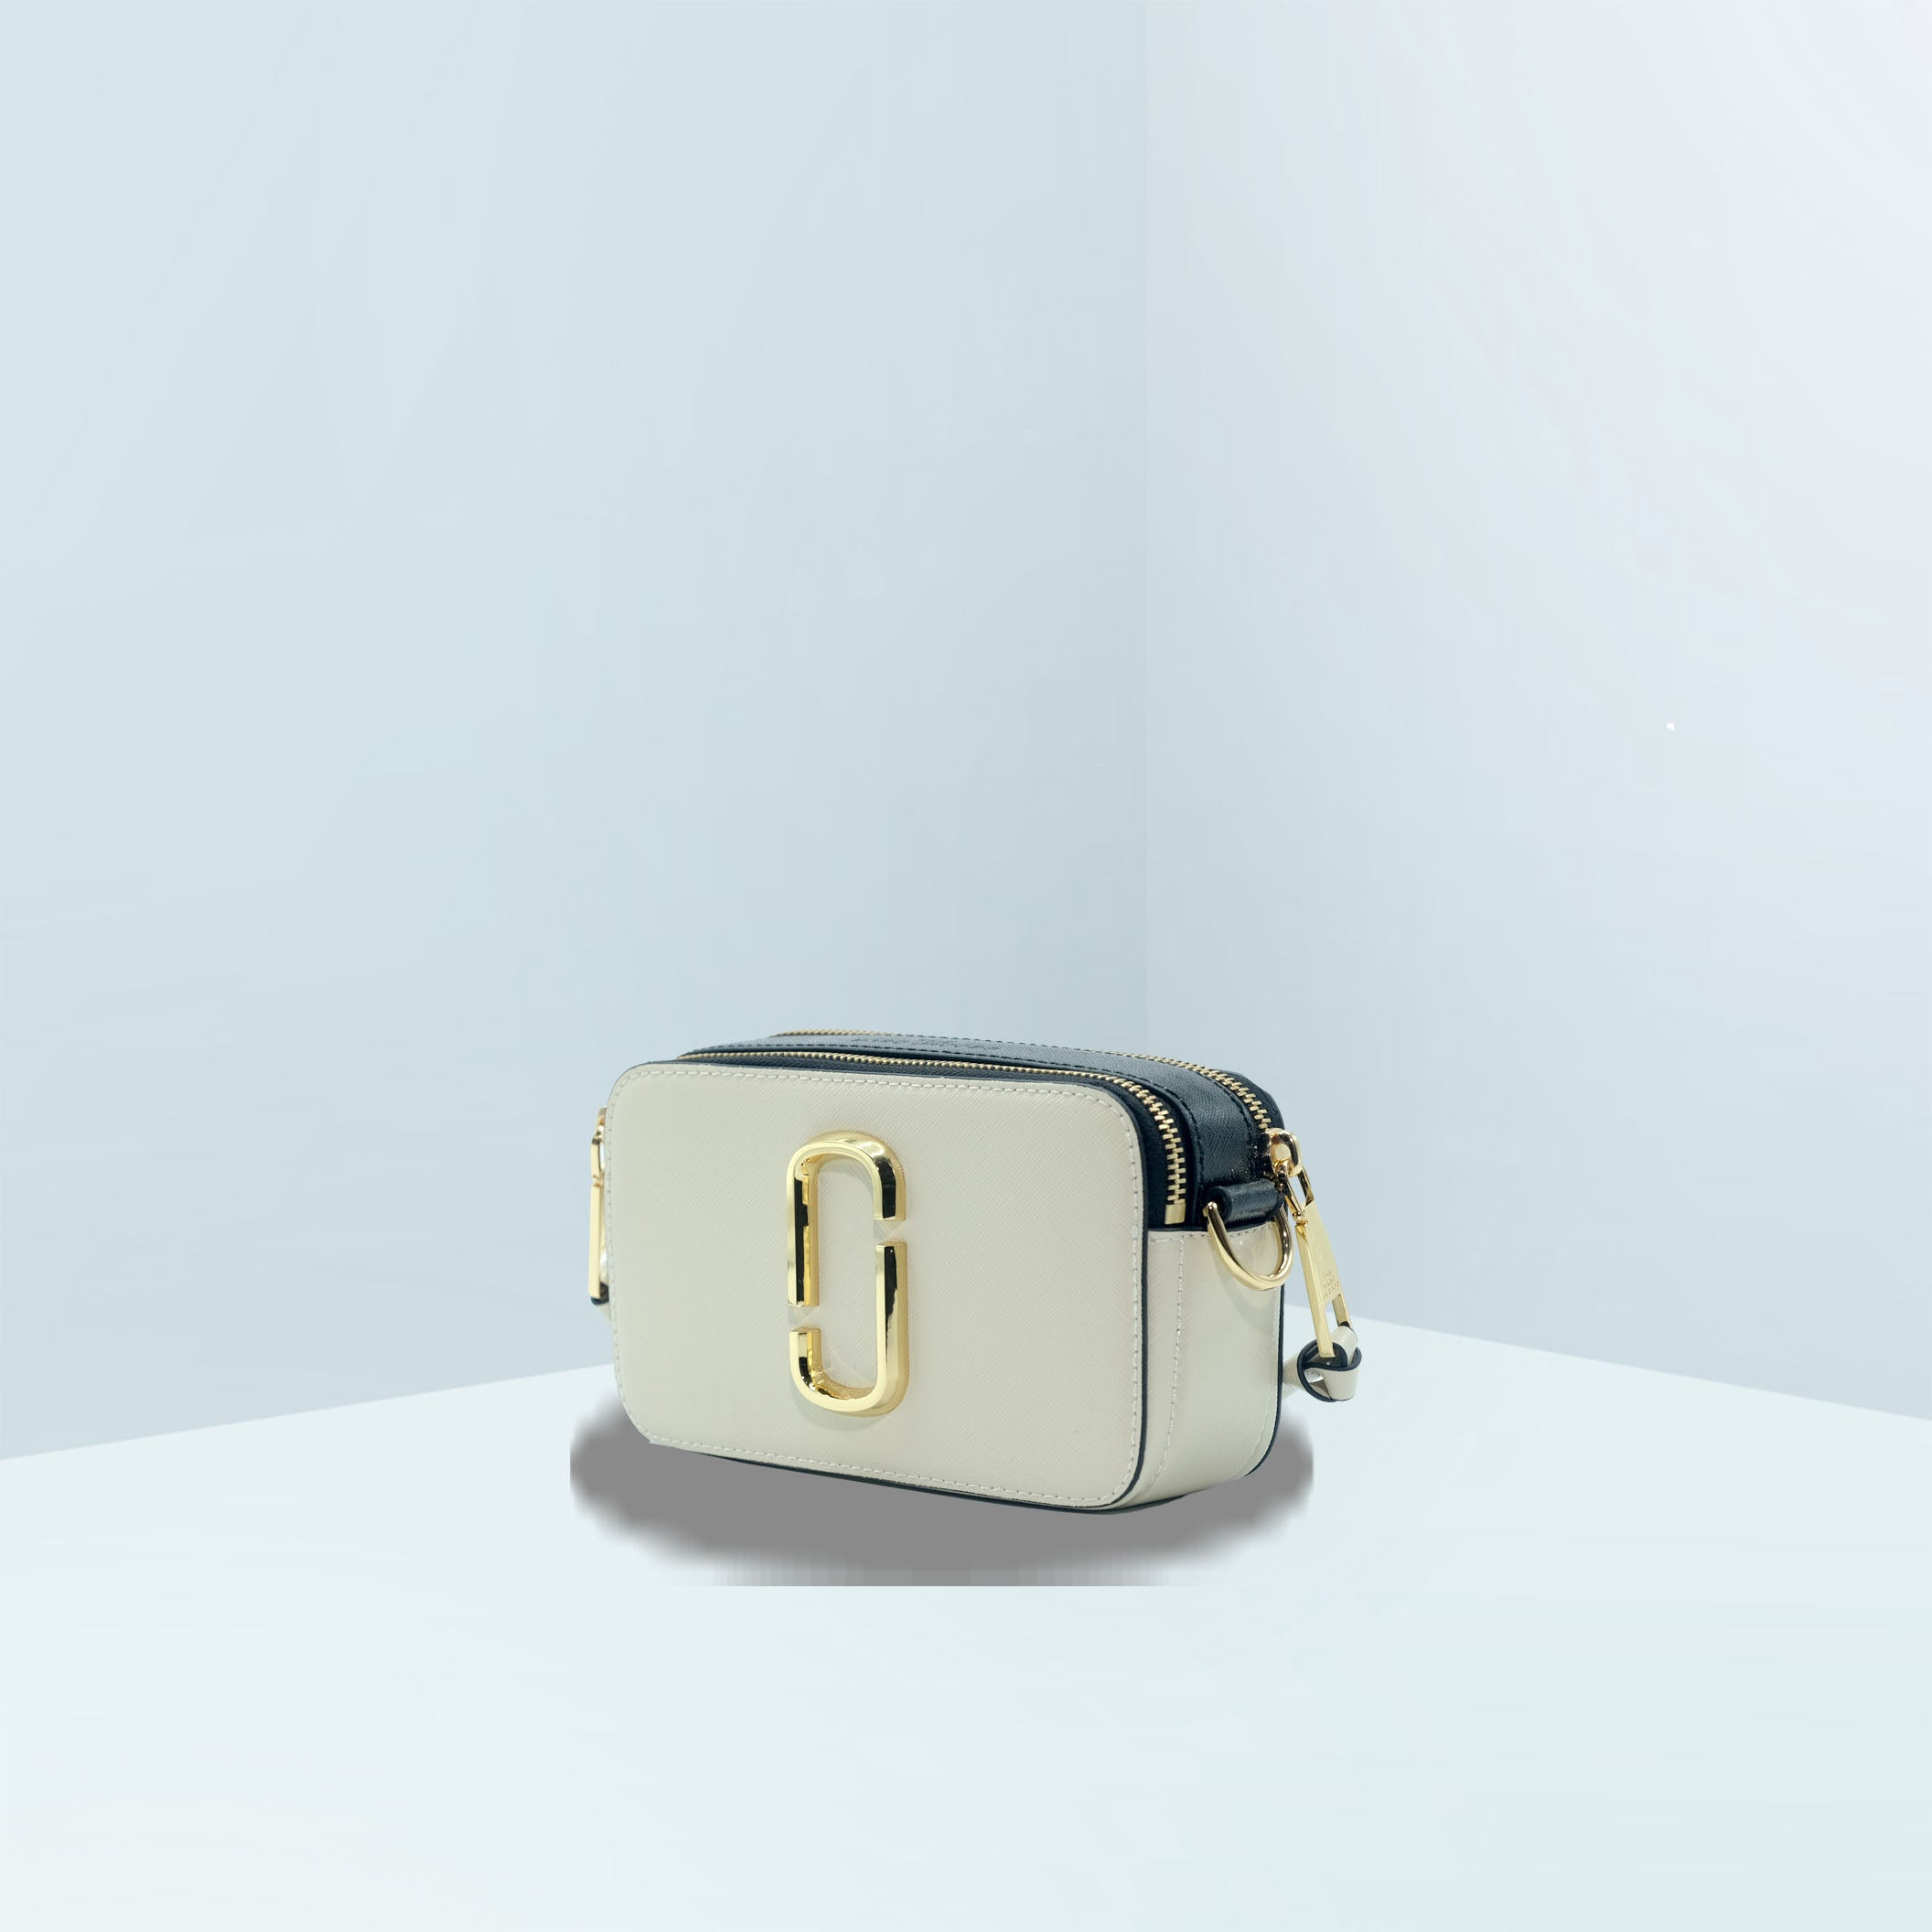 The Marc Jacobs Small Snapshot Camera Crossbody Bag